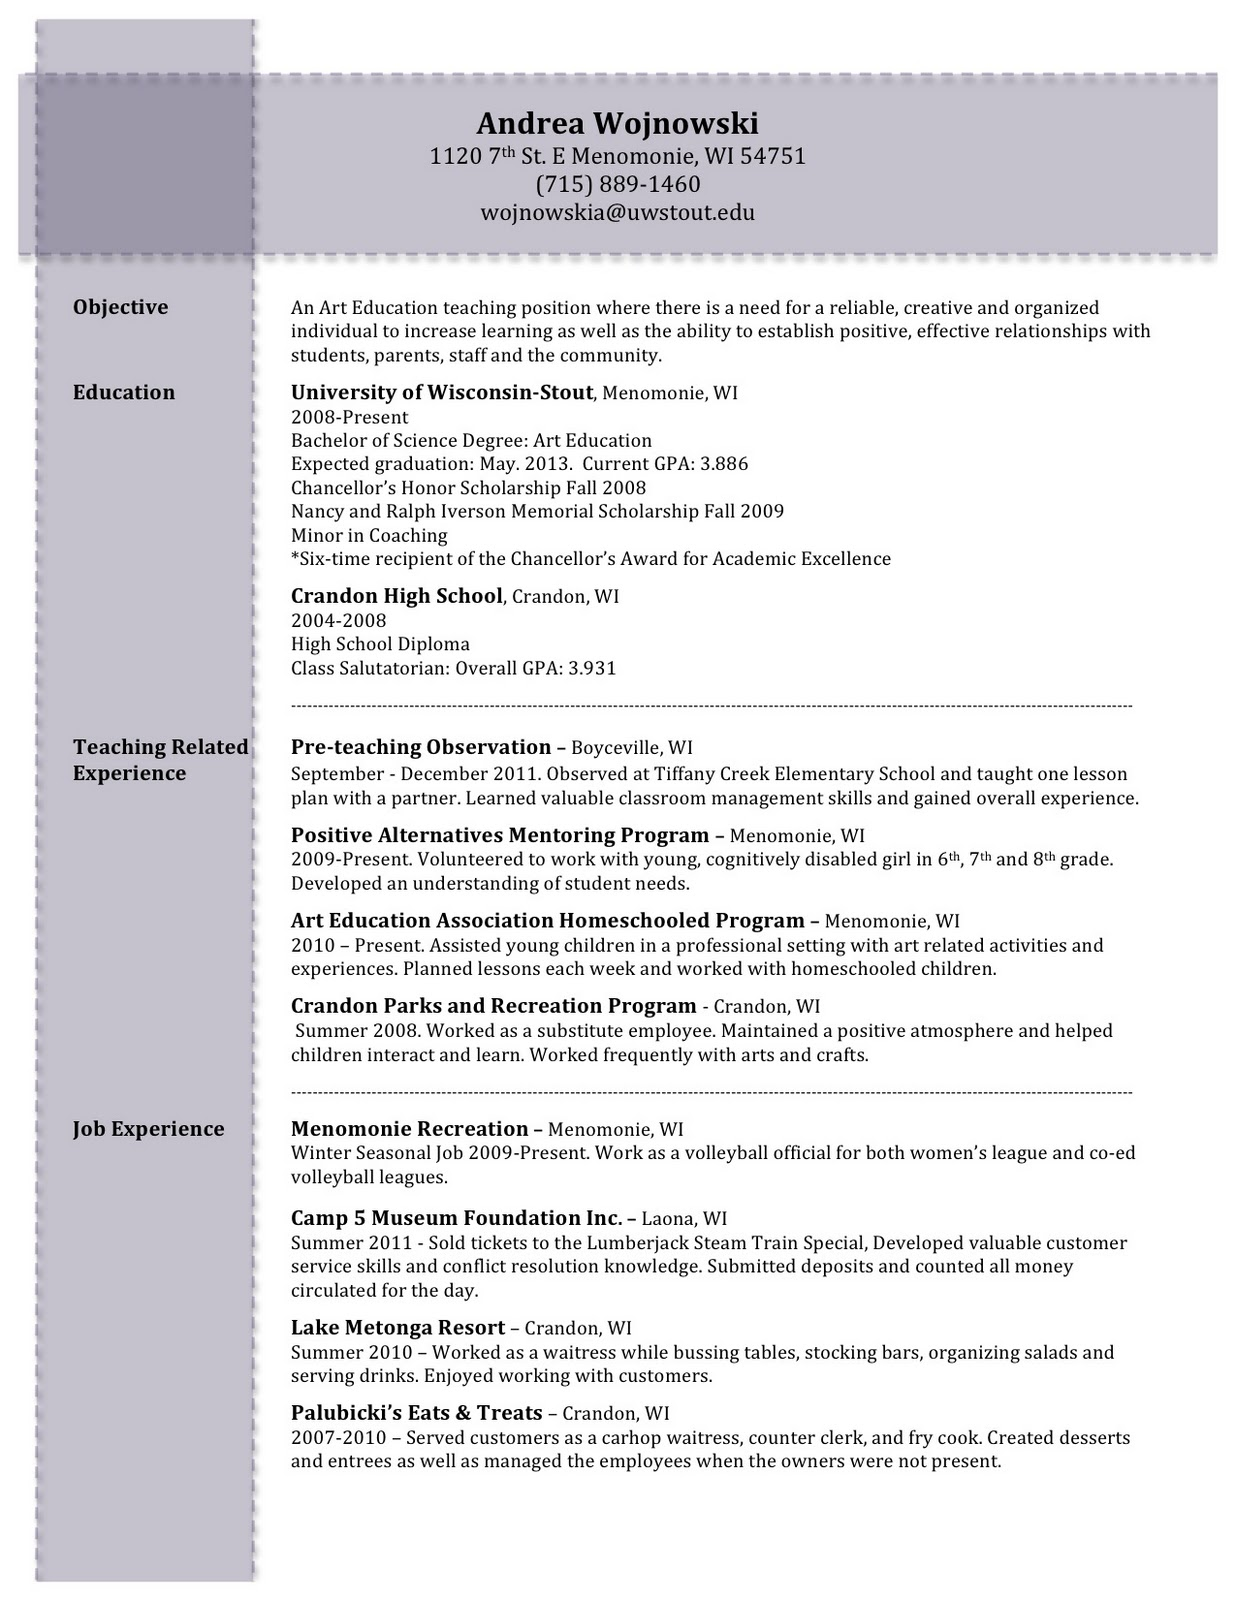 art education field experience resume writing art education field experience